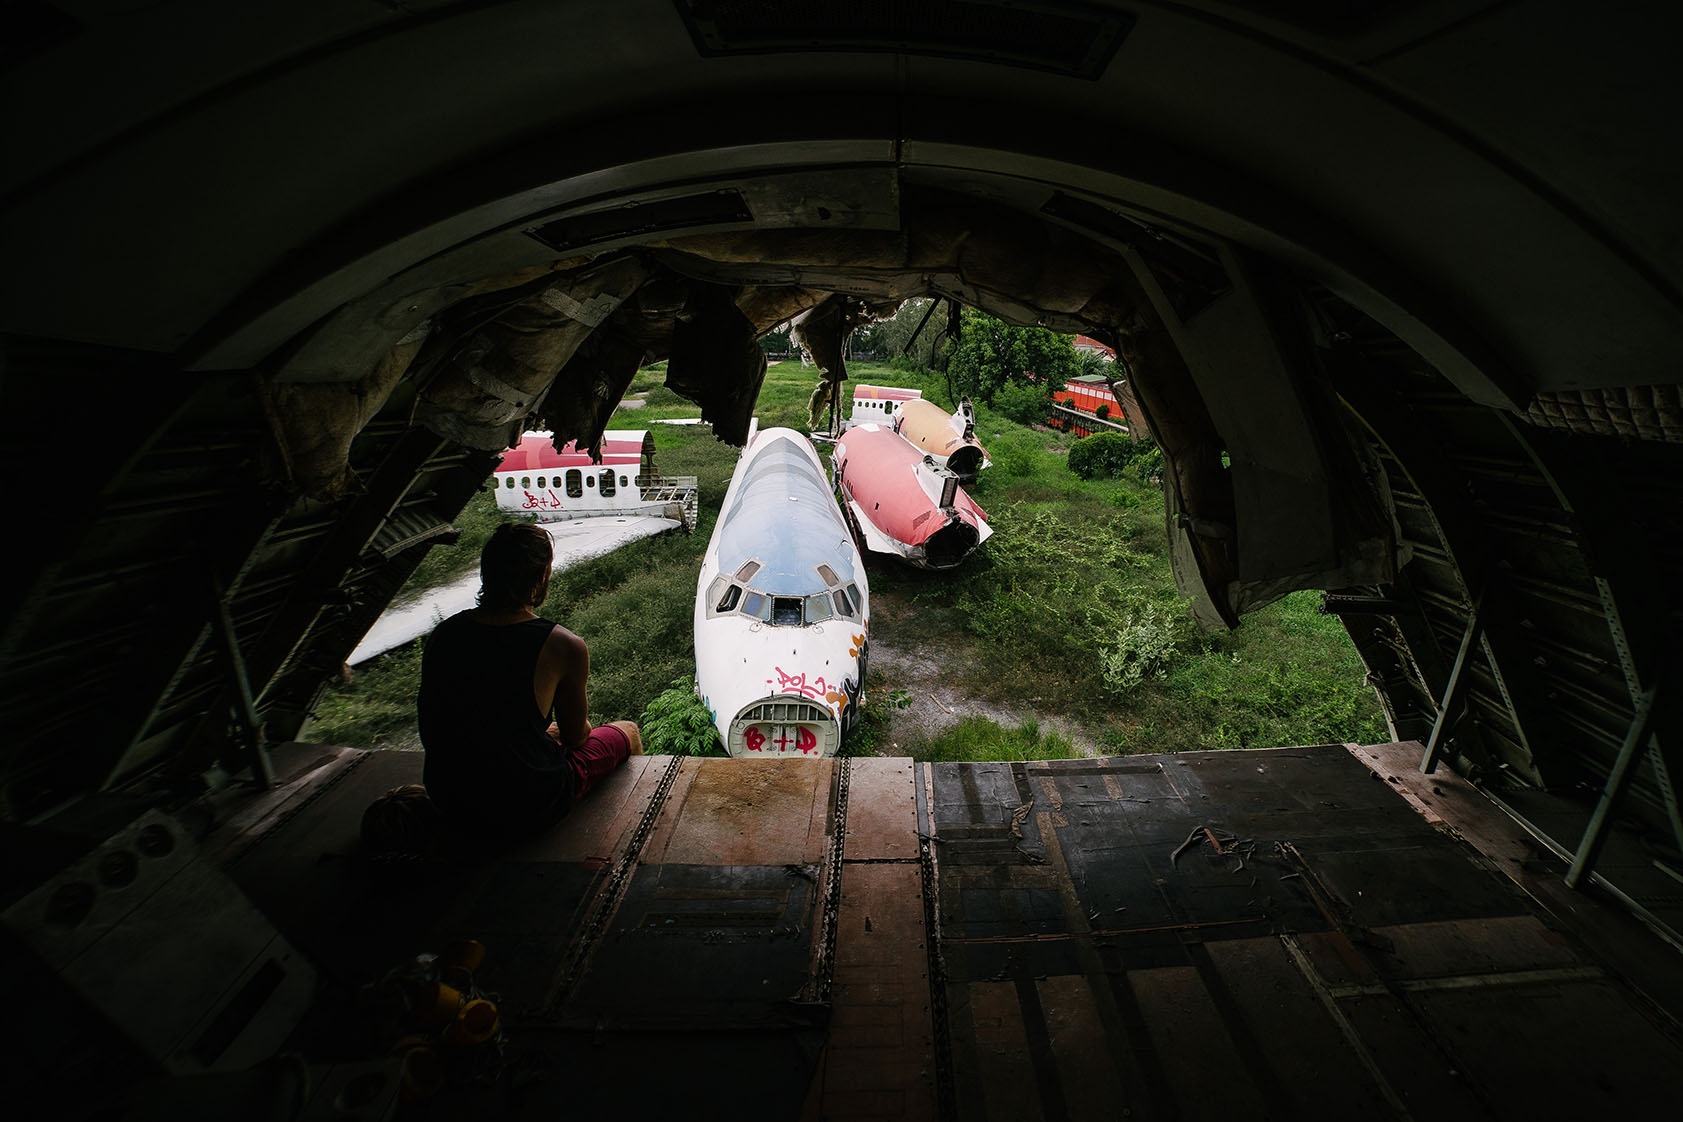 Many airlines send in the old fuselages of their planes to be recycled, and salvage any components which may be reused again – be it for a new plane, or something completely different. Not all planes get to be reincarnated though. Some end up all but forgotten in an open field for earth to reclaim.